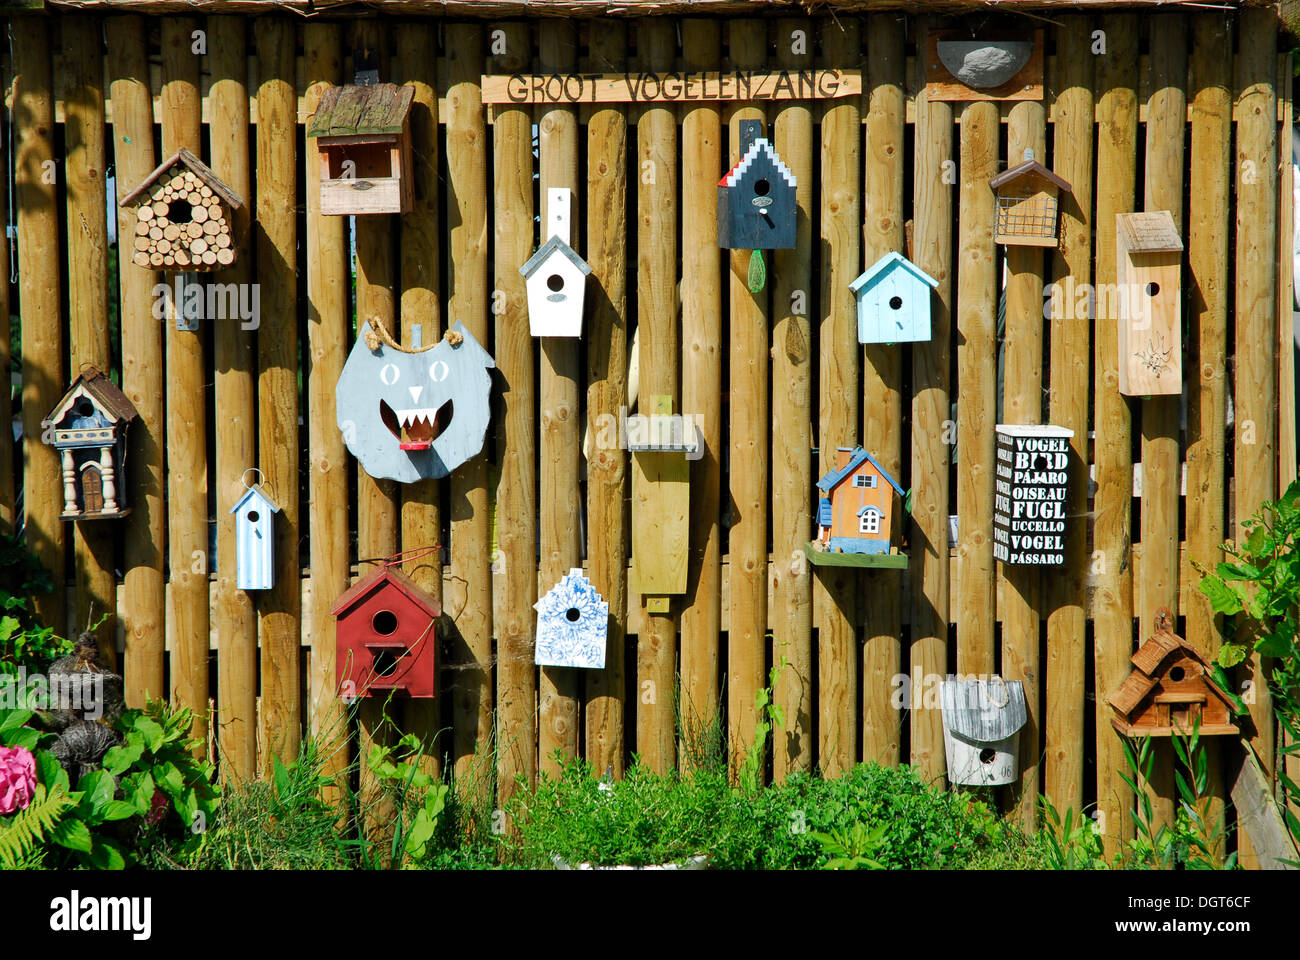 Birdhouses on a wall, Reeuwijk, Zuid-Holland, South Holland, The Netherlands, Europe - Stock Image